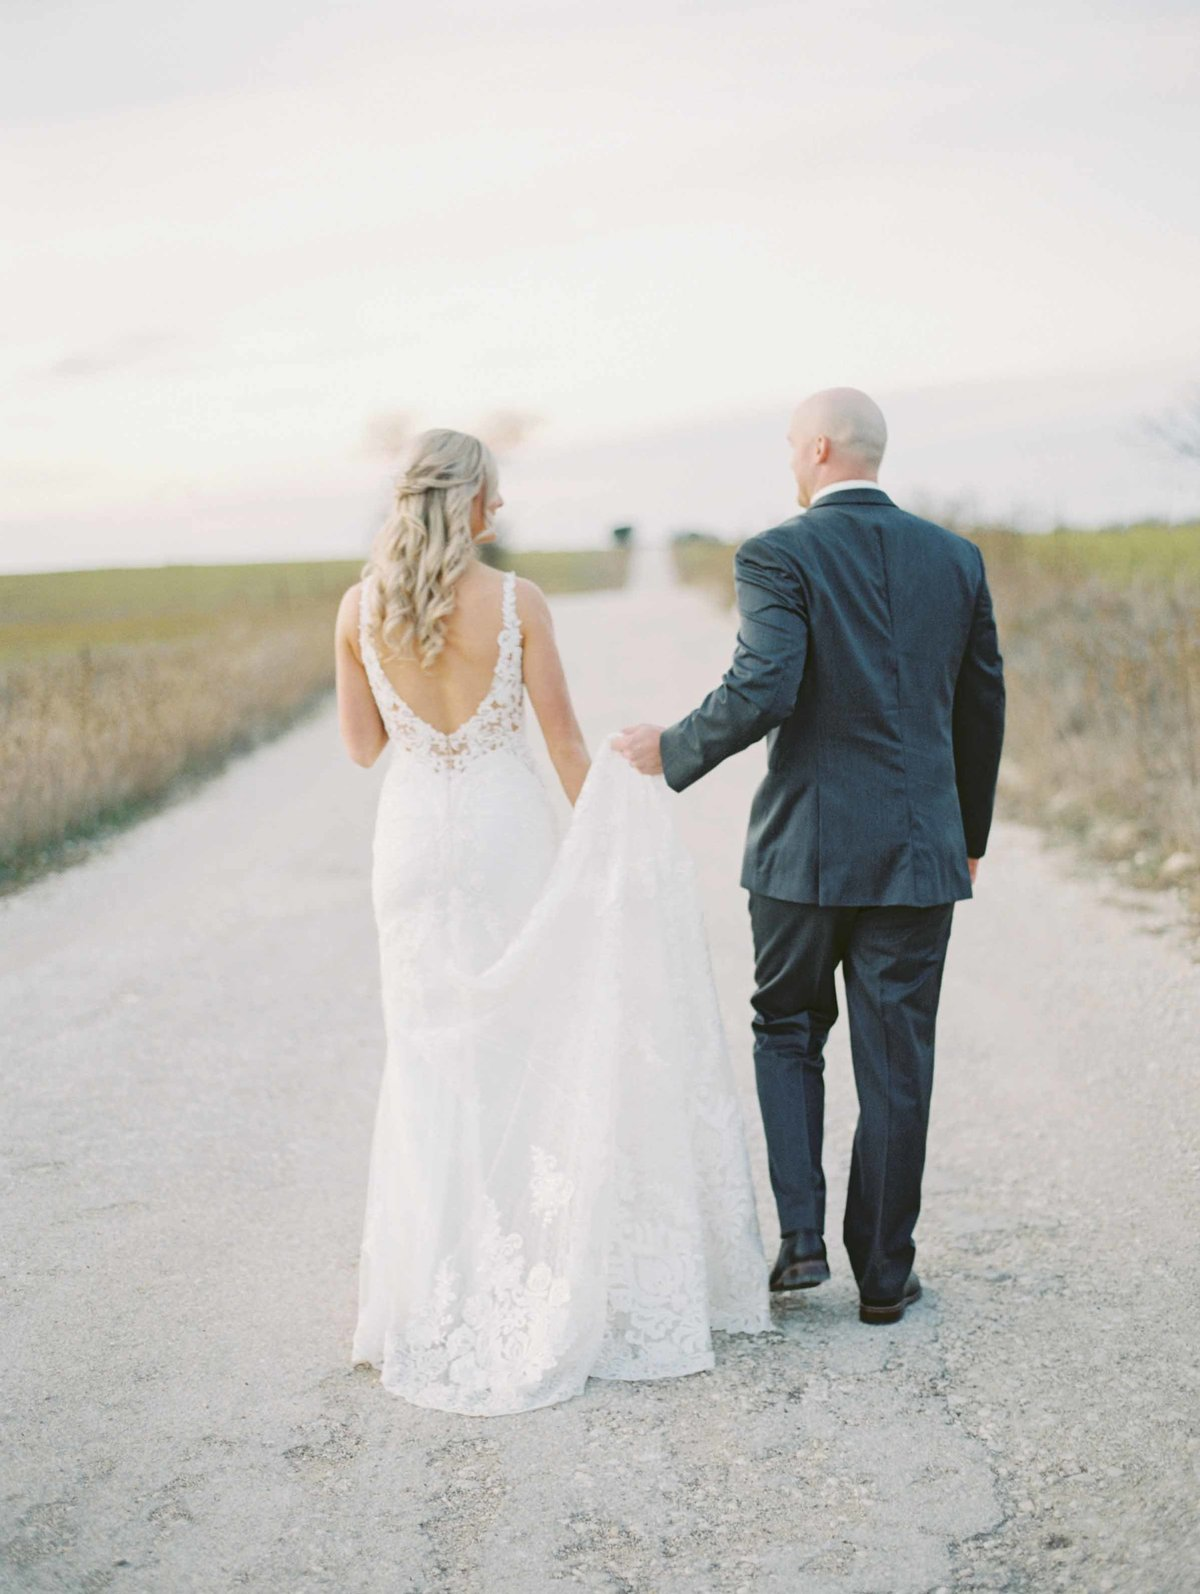 Angel_owens_photography_wedding89